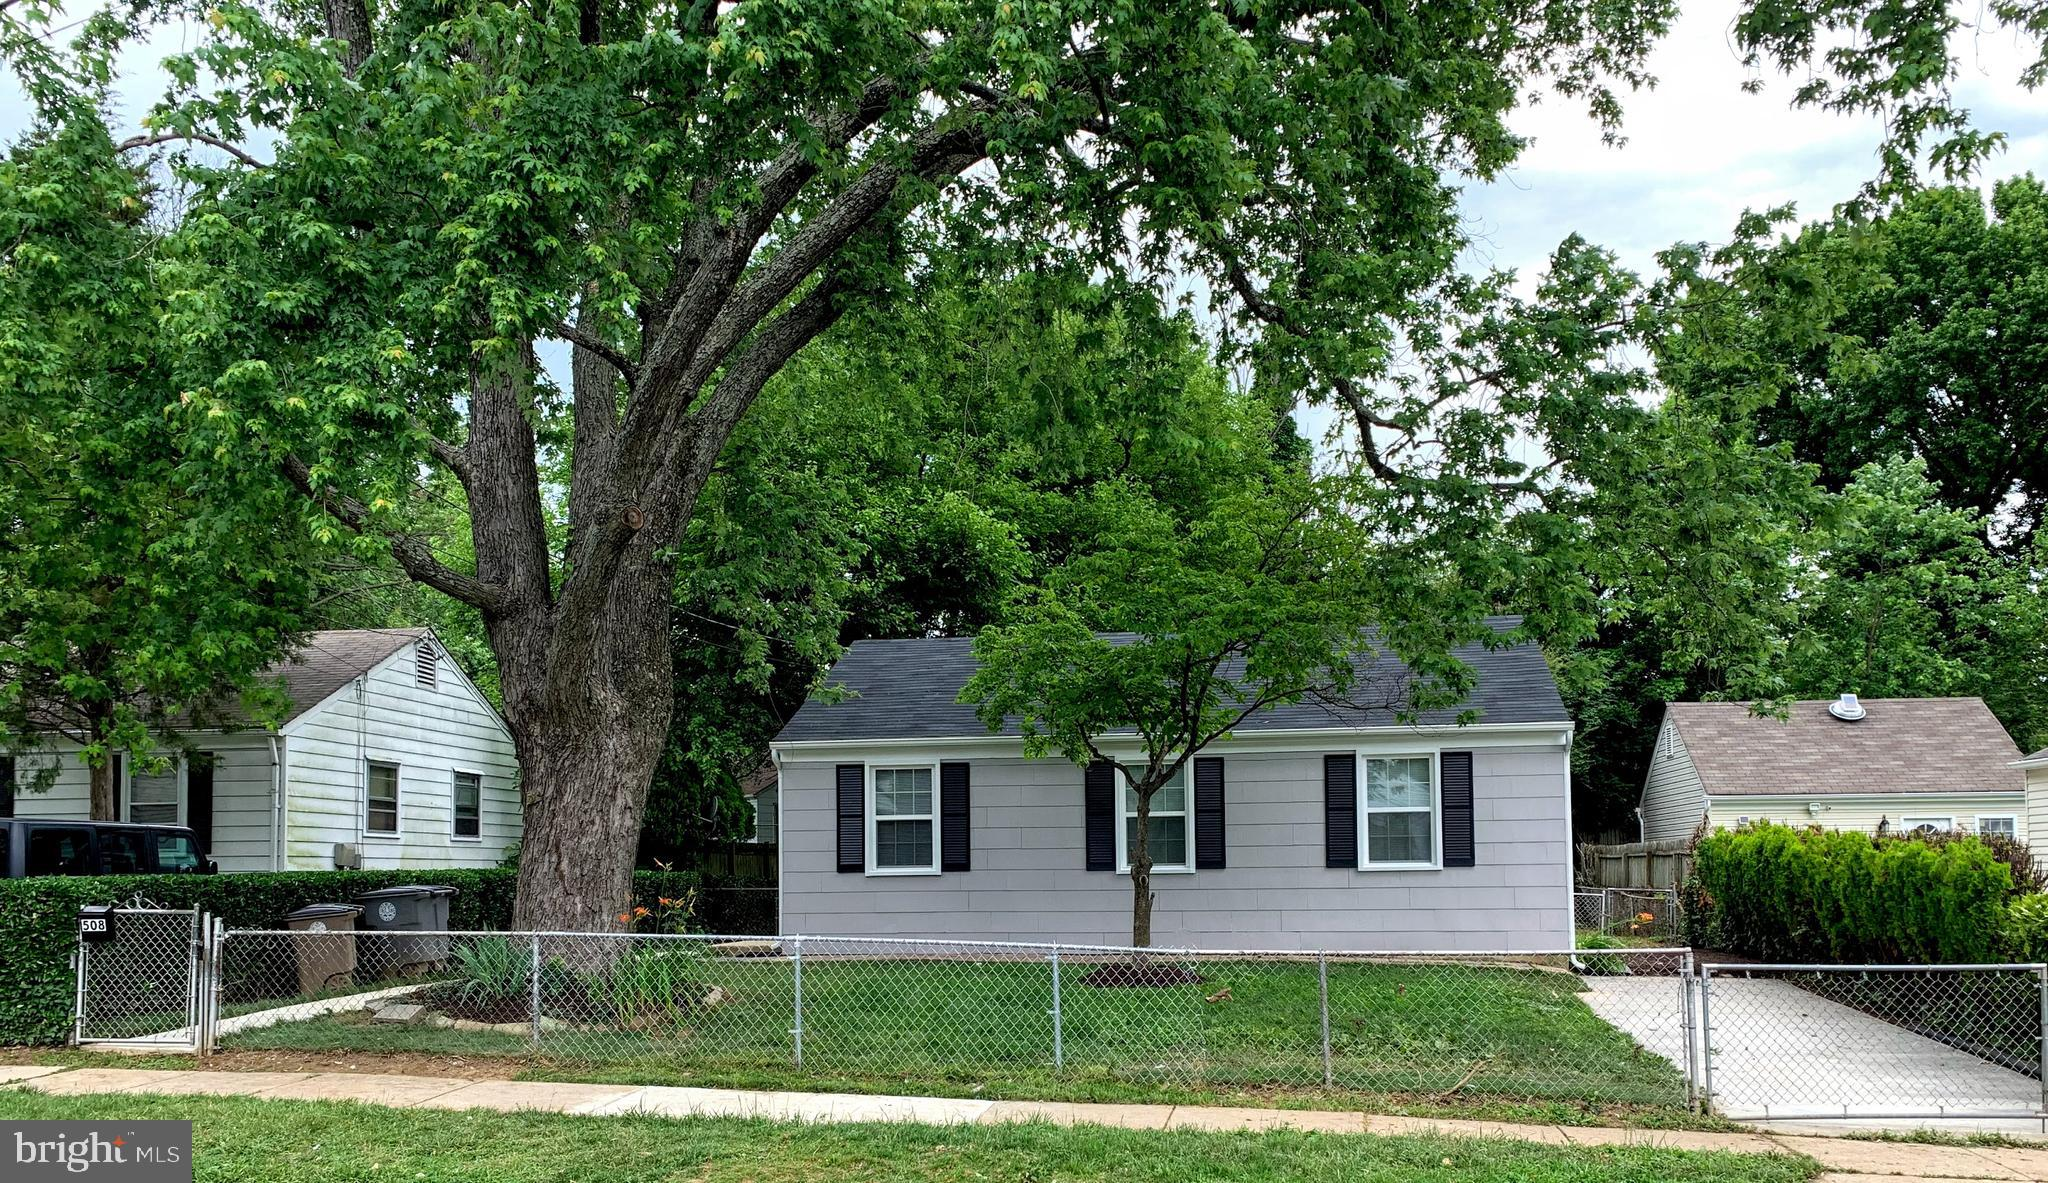 RENOVATED 3BR, 1BTH SINGLE FAMILY HOME IN THE HEART OF ROCKVILLE. WALK TO THE ROCKVILLE METRO AND TO